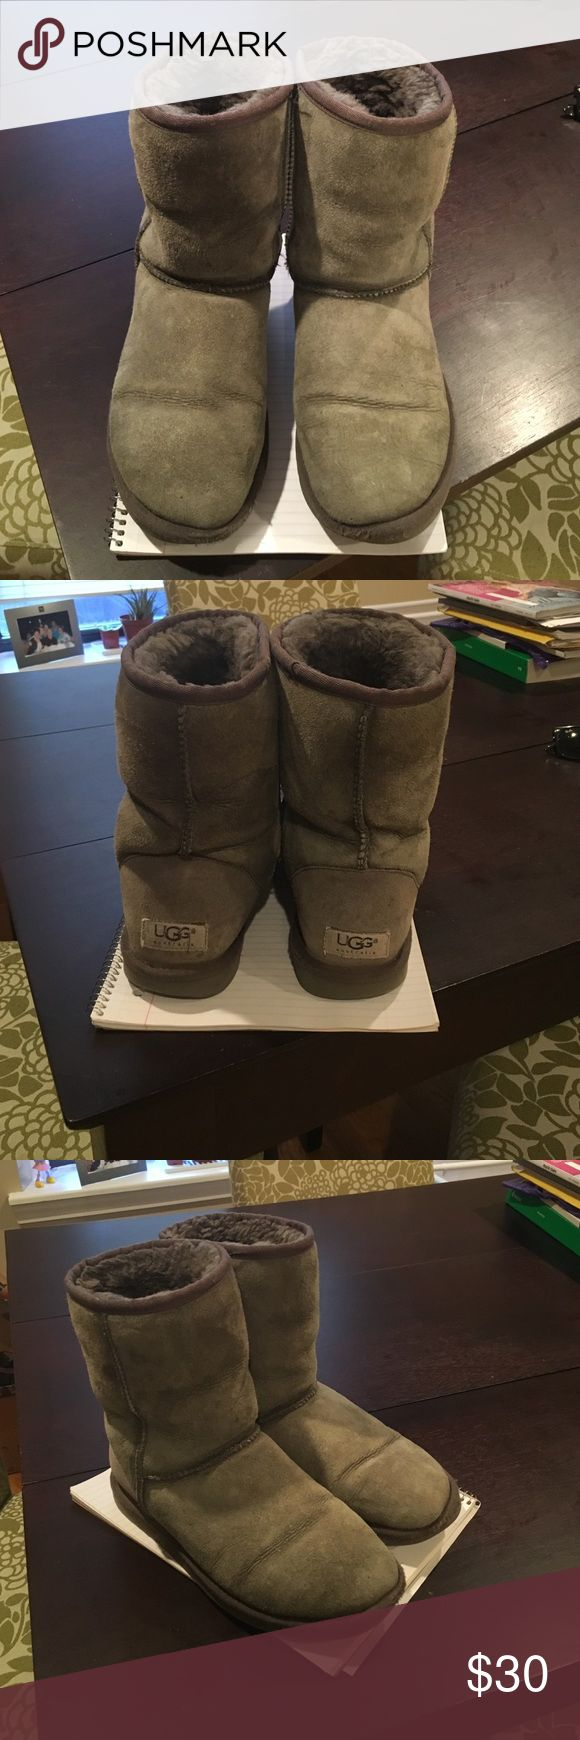 Ugg Classic Short Grey Boots Ugg Women's Classic Grey Boots - Size 6 - well worn but still warm! UGG Shoes Winter & Rain Boots